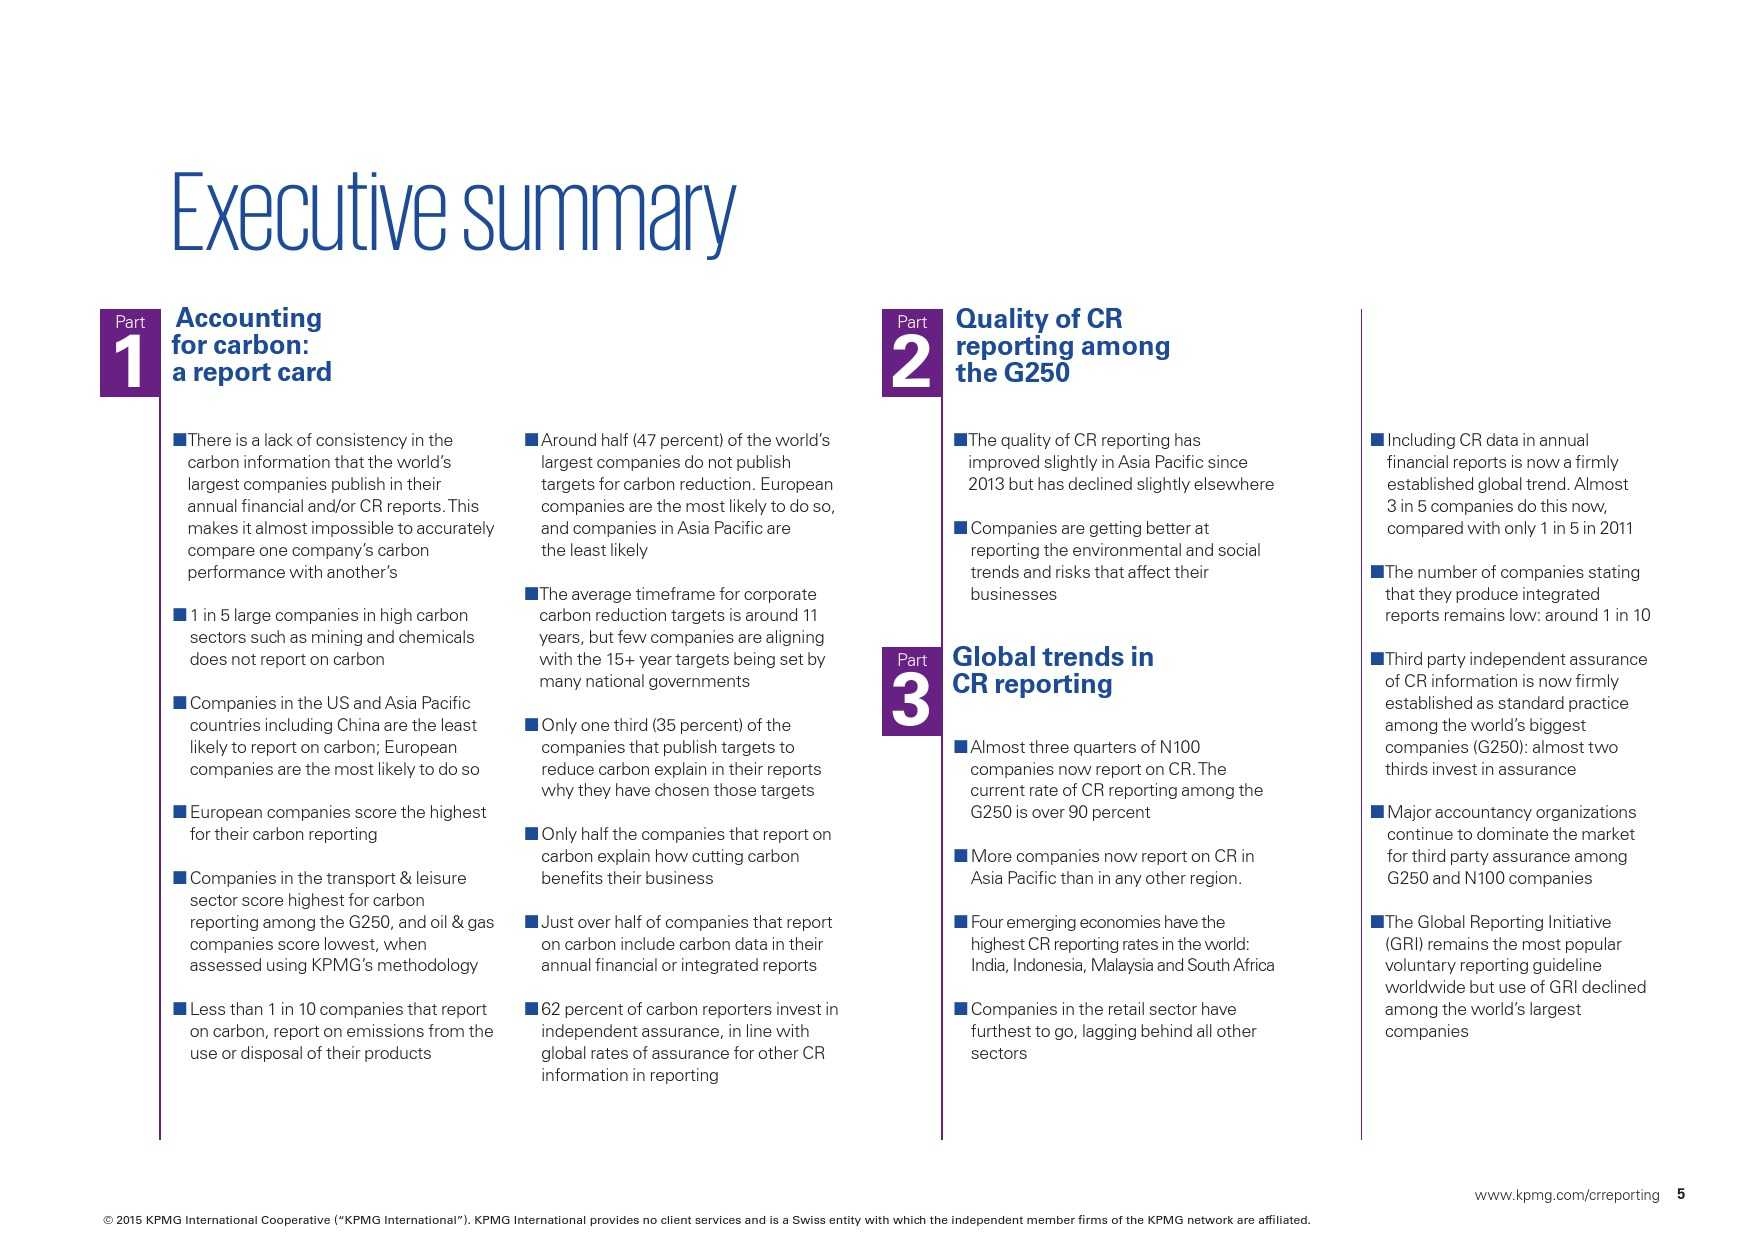 kpmg-international-survey-of-corporate-responsibility-reporting-2015_000005